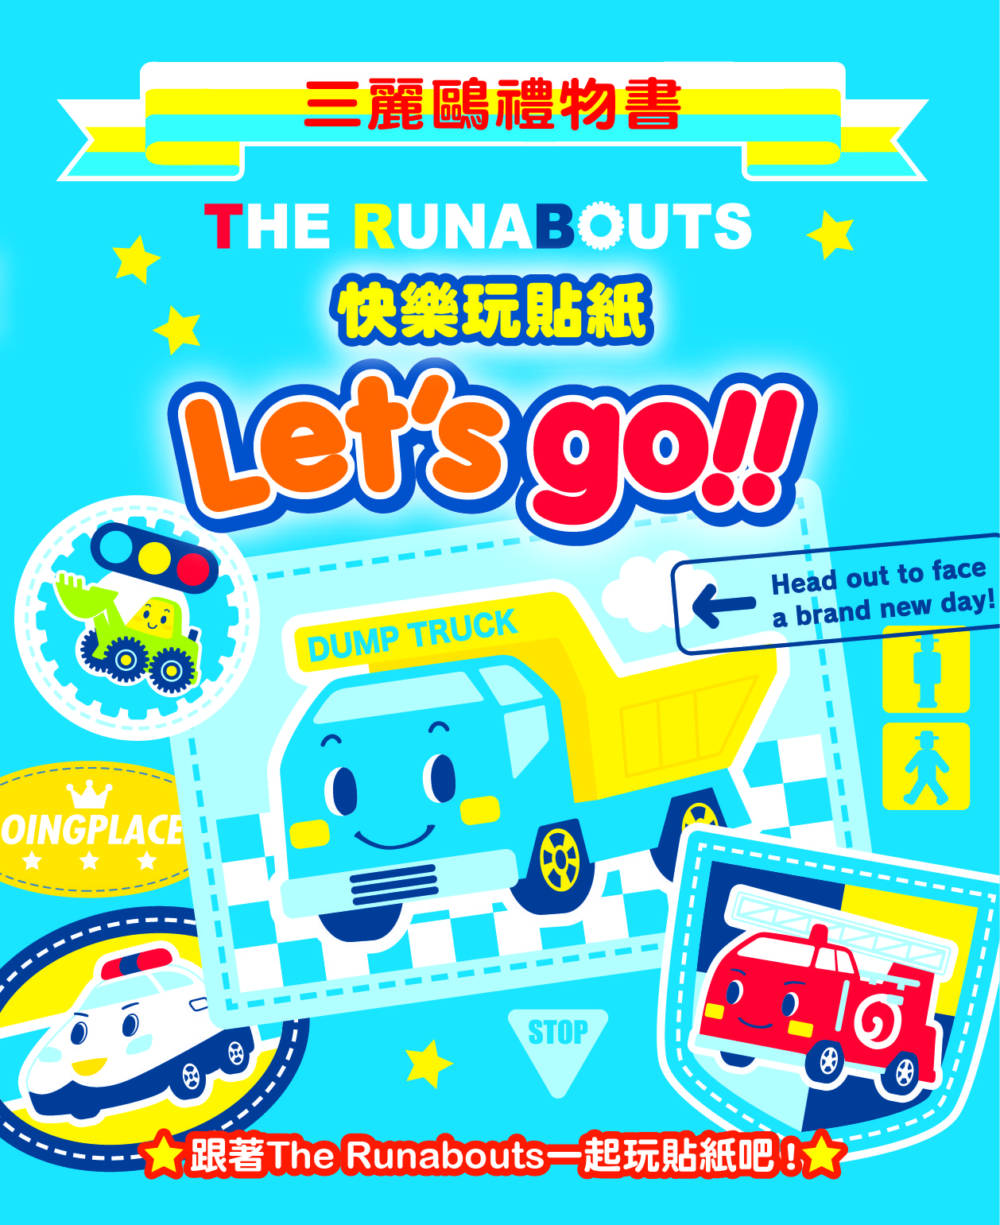 The Runabouts Sticker Activity Book • THE RUNABOUTS 快樂玩貼紙 Let's go!!